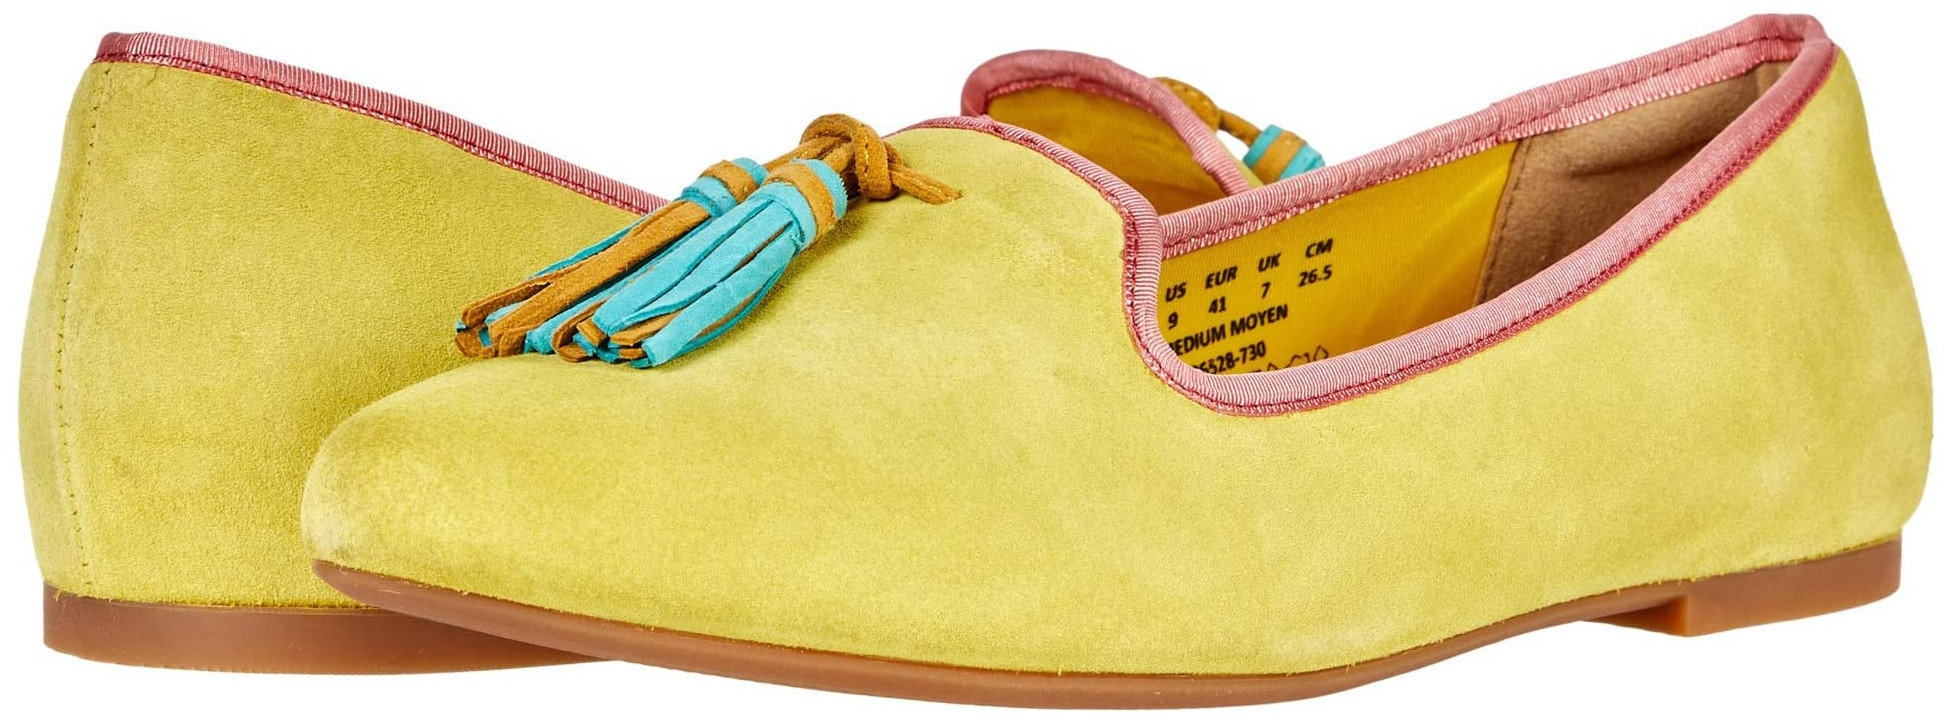 Offering both comfort and style, Hush Puppies Sadie features soft cotton twill lining, soft leather socklining, and the label's Bounce footbed